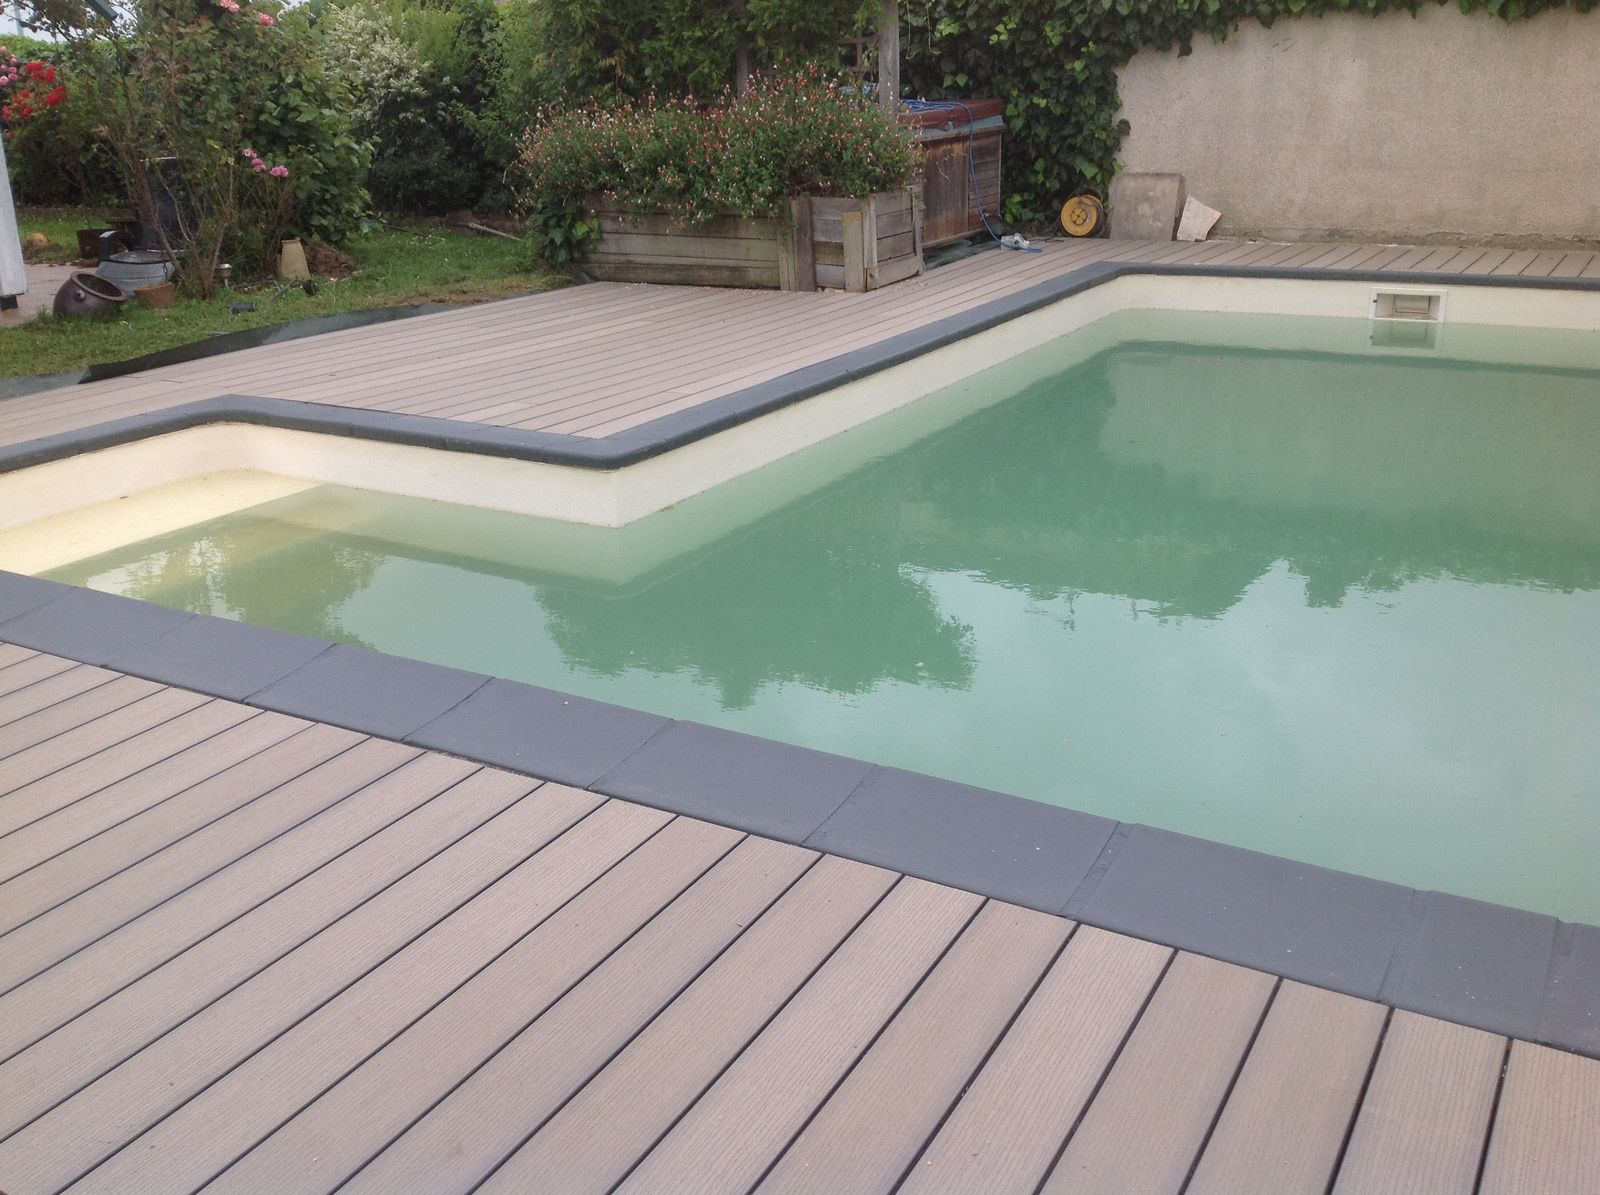 Terrasses composites quelques creations 2016 le blog for Terrasse piscine bois composite